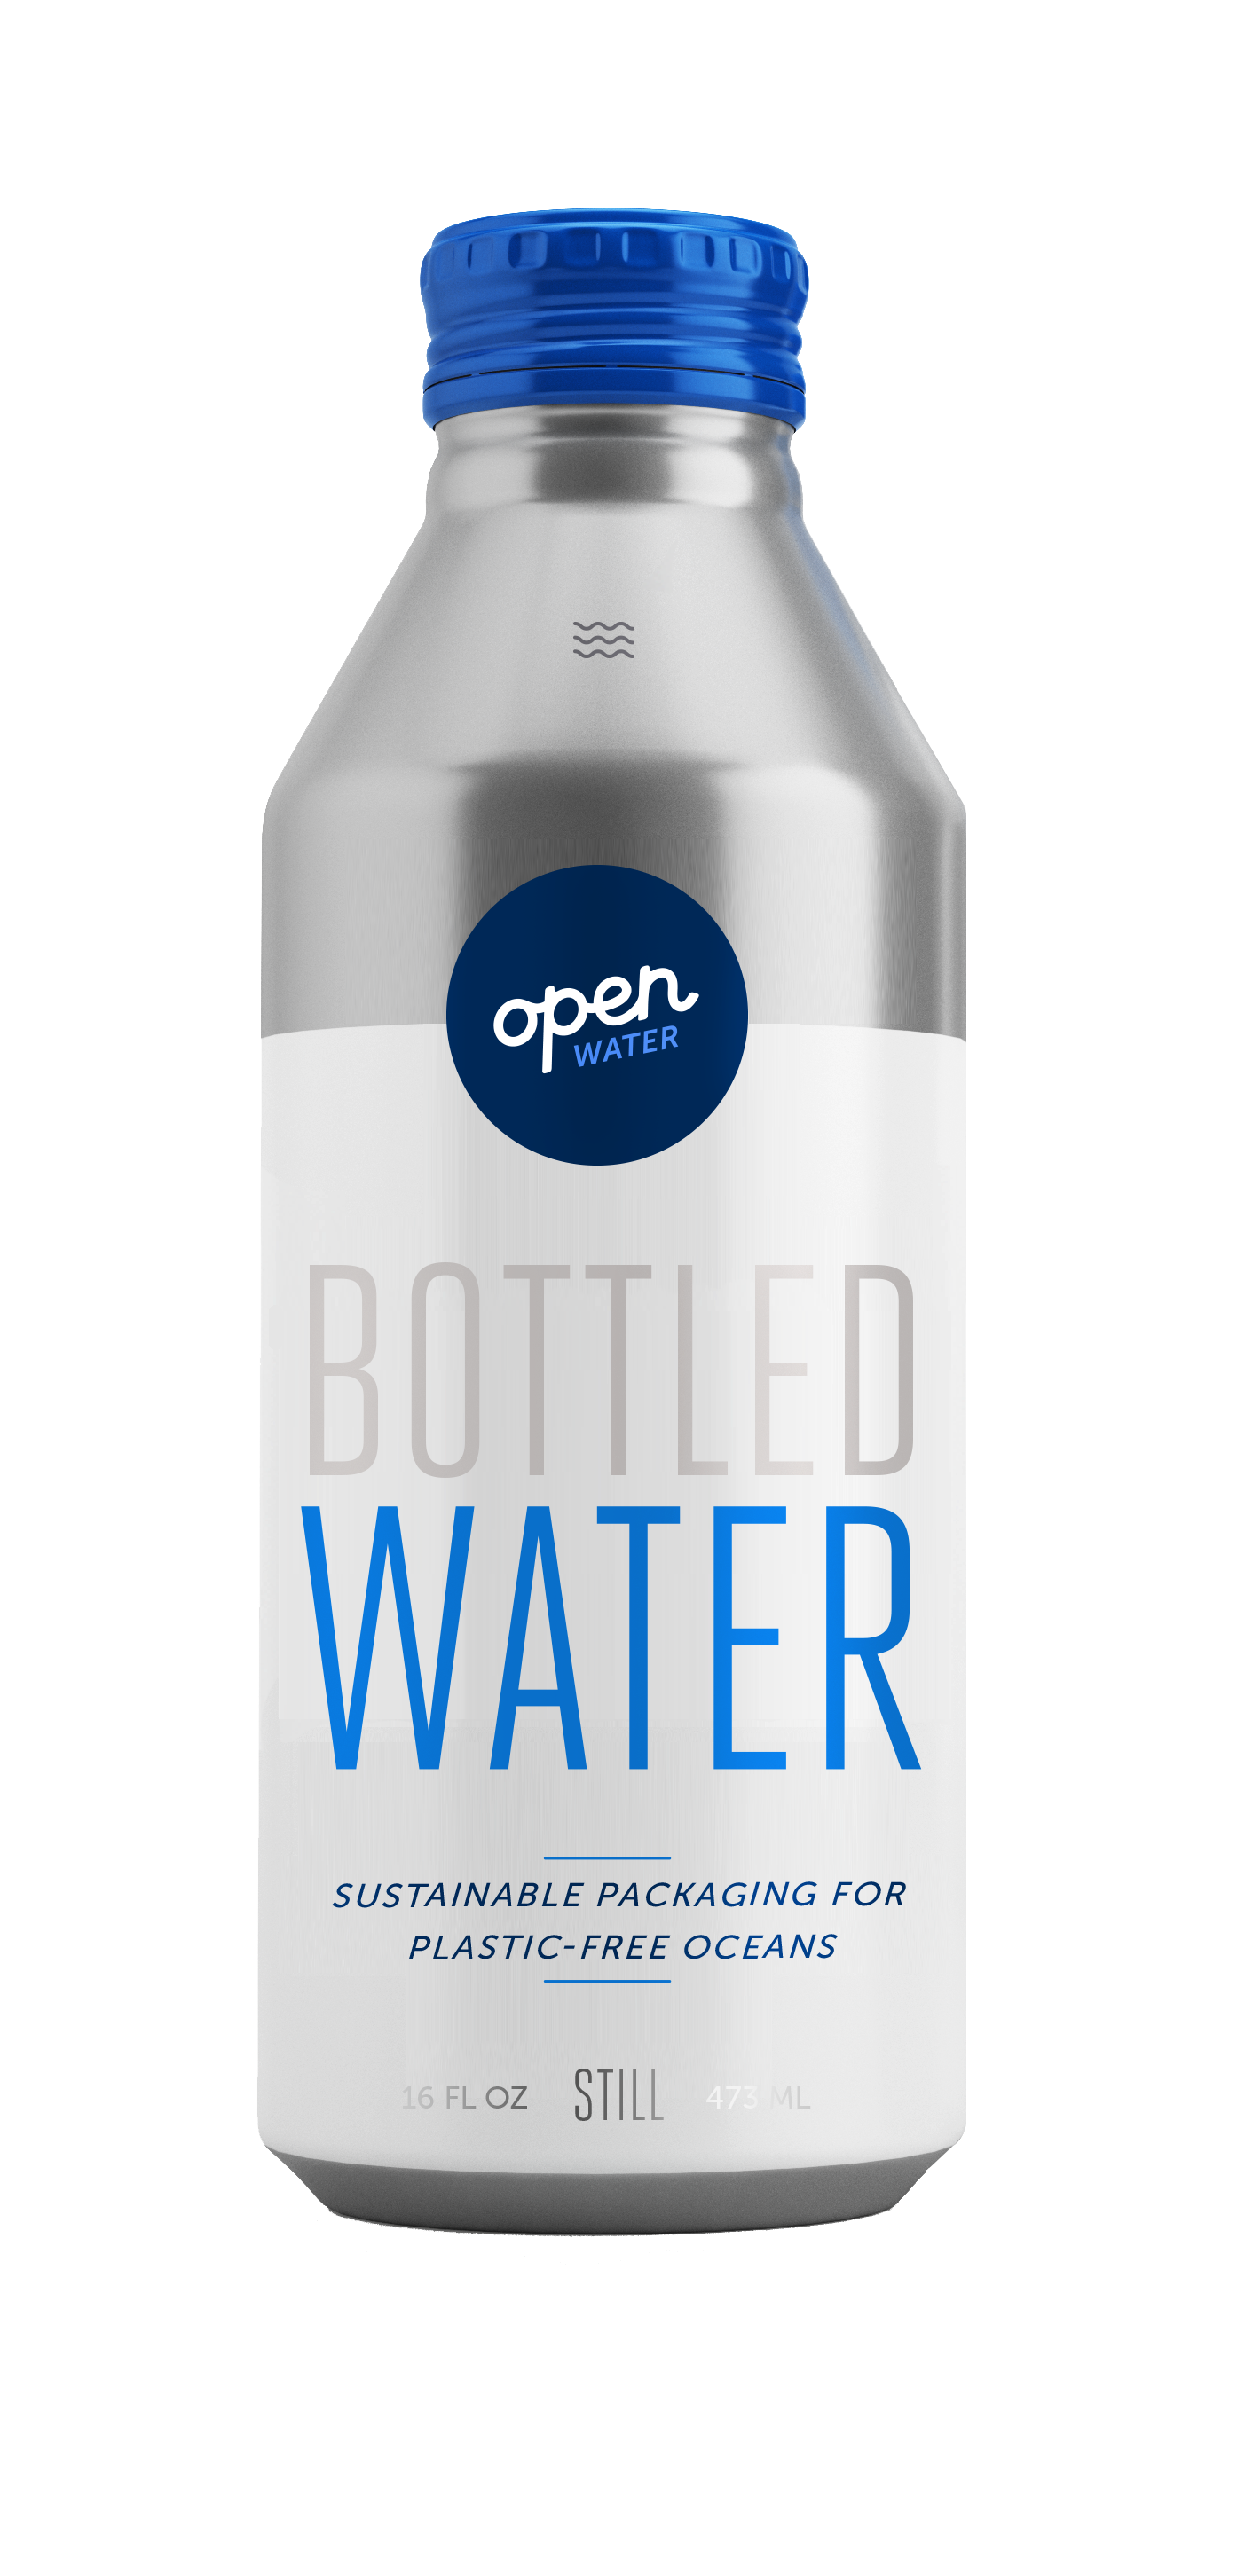 Open Water - Still Bottled Water in aluminum